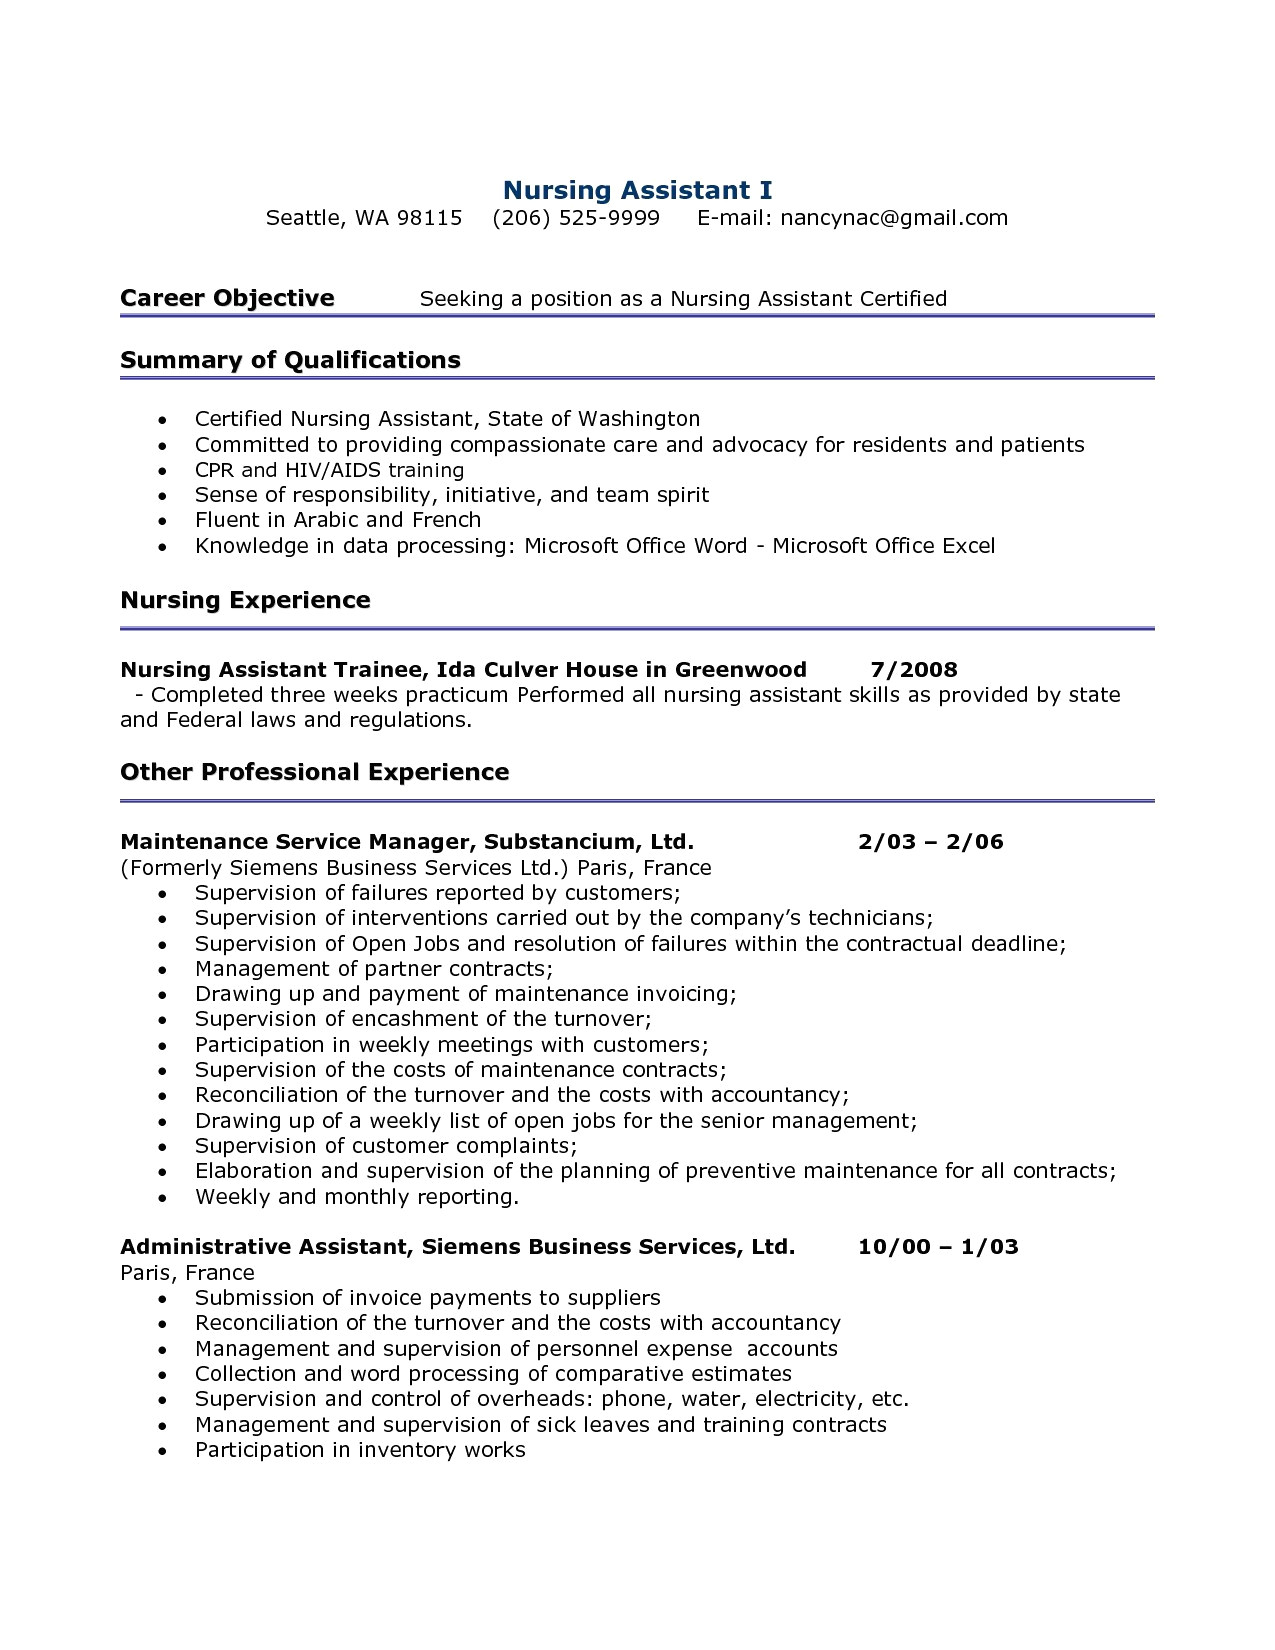 nursing resume template free download Collection-Luxury Awesome Youtube Banner Designs Free Download Resume Templates Lovely Pr Resume Template Elegant Dictionary 8-q